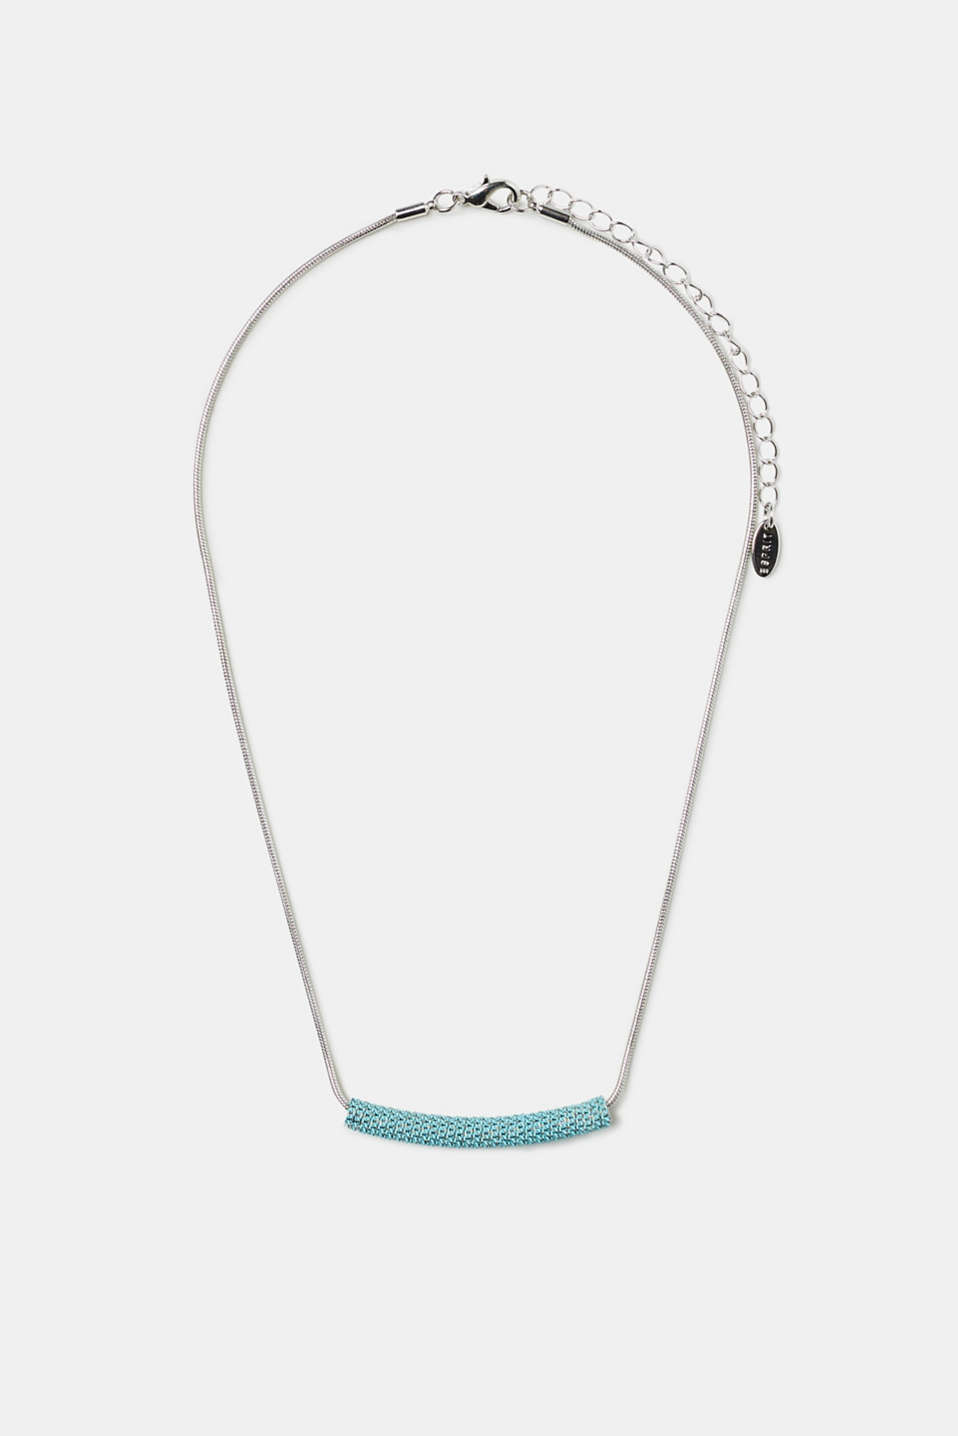 Esprit - Short tube necklace with bar-shaped beads